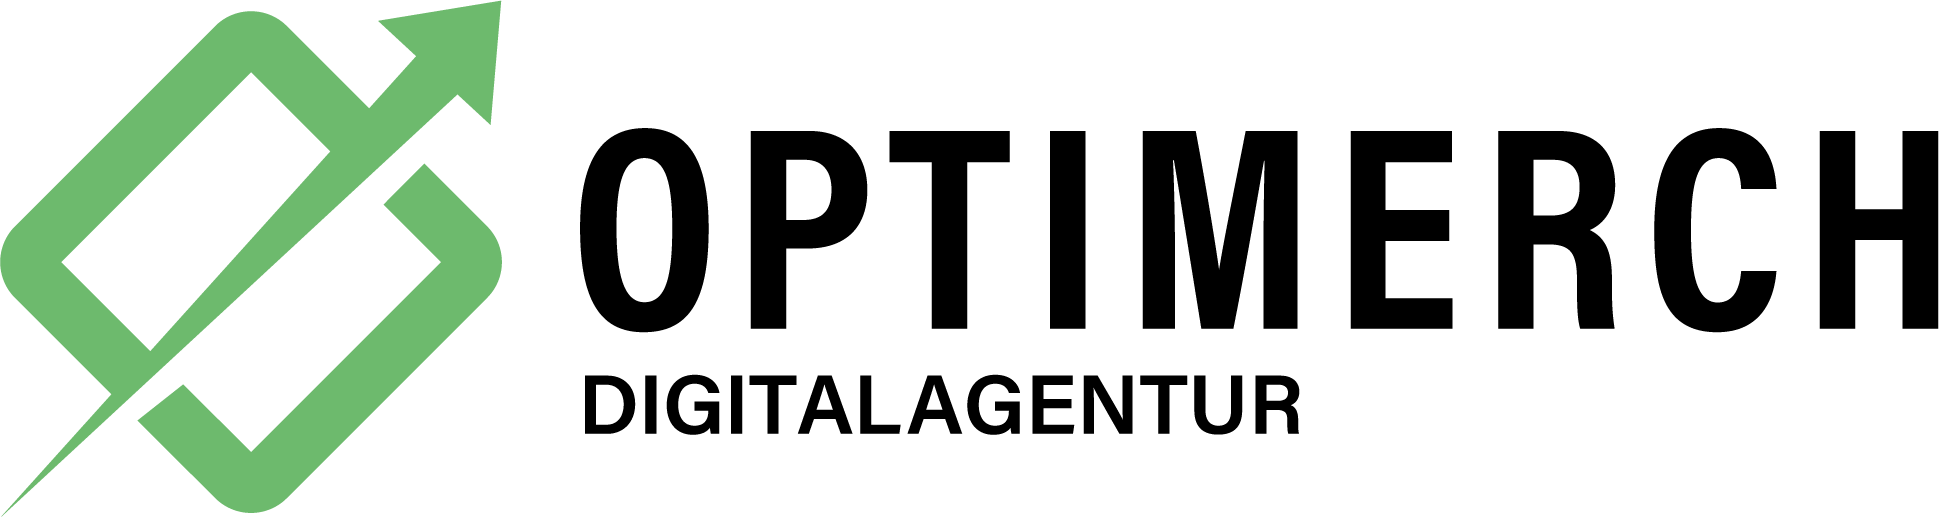 Optimerch Amzon Digitalagentur